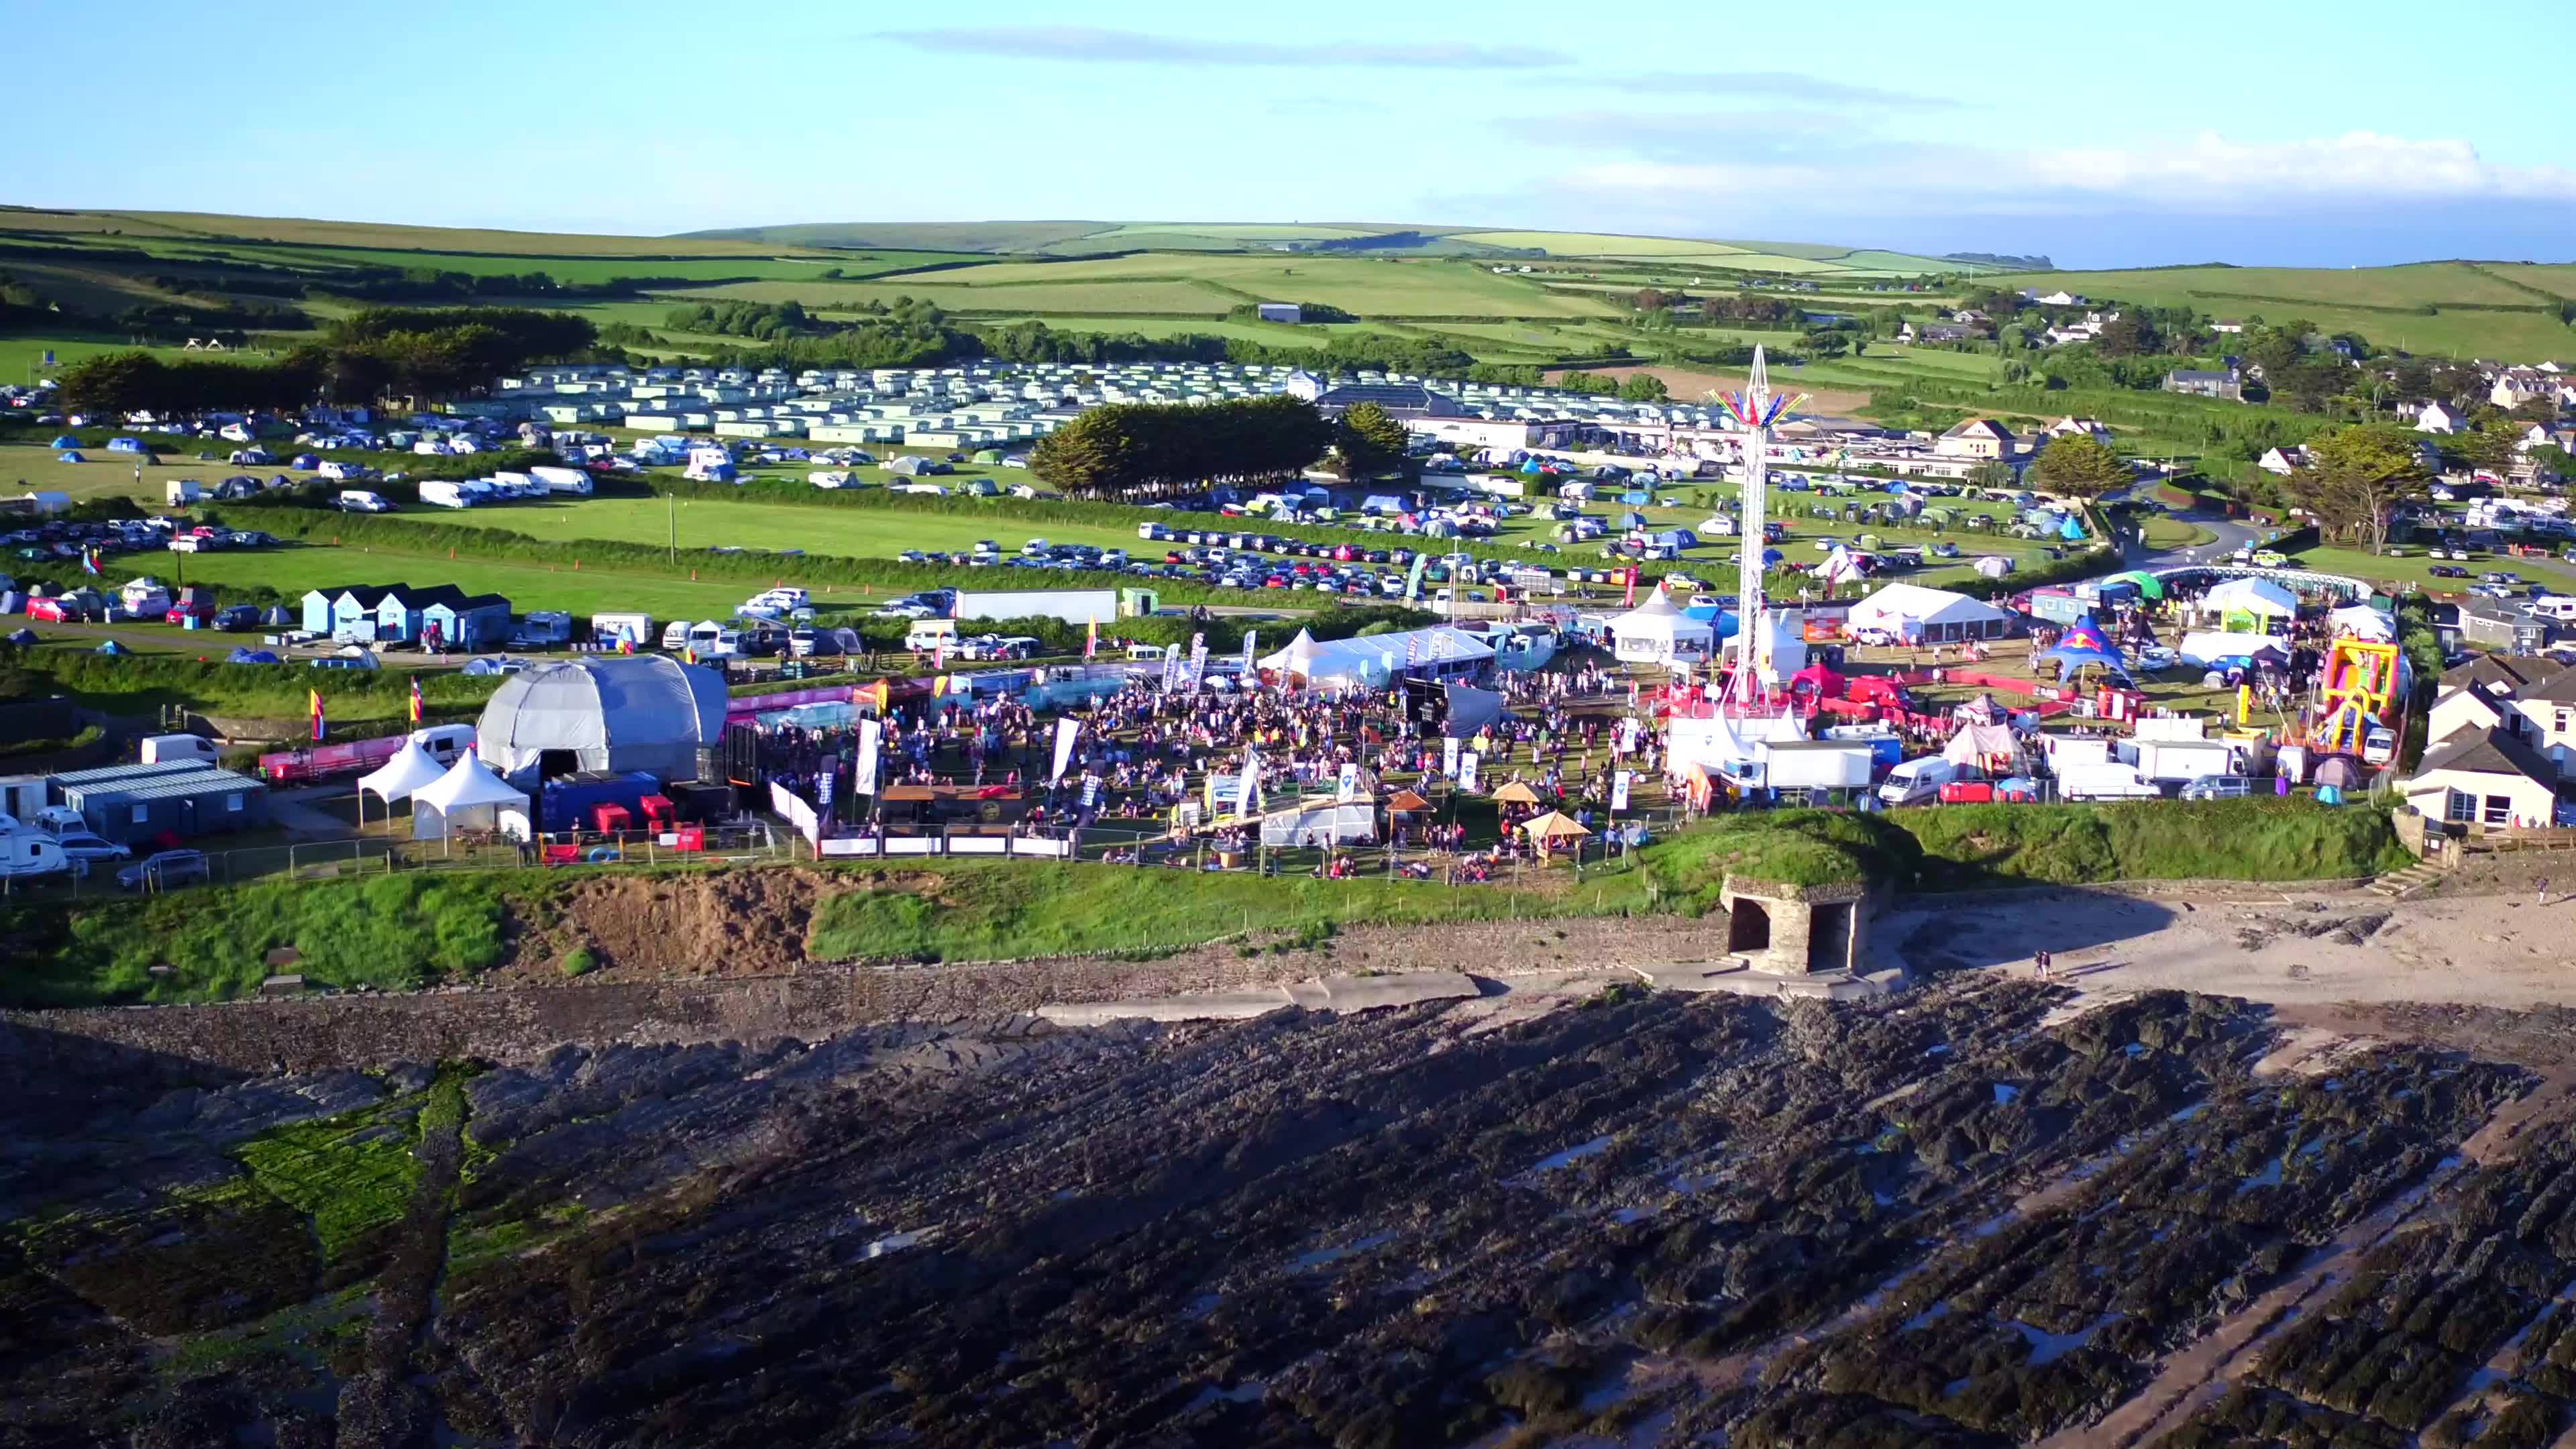 Beautiful Croyde Bay hosts #oceanfest19 - the 21st edition of the GoldCoast surf...